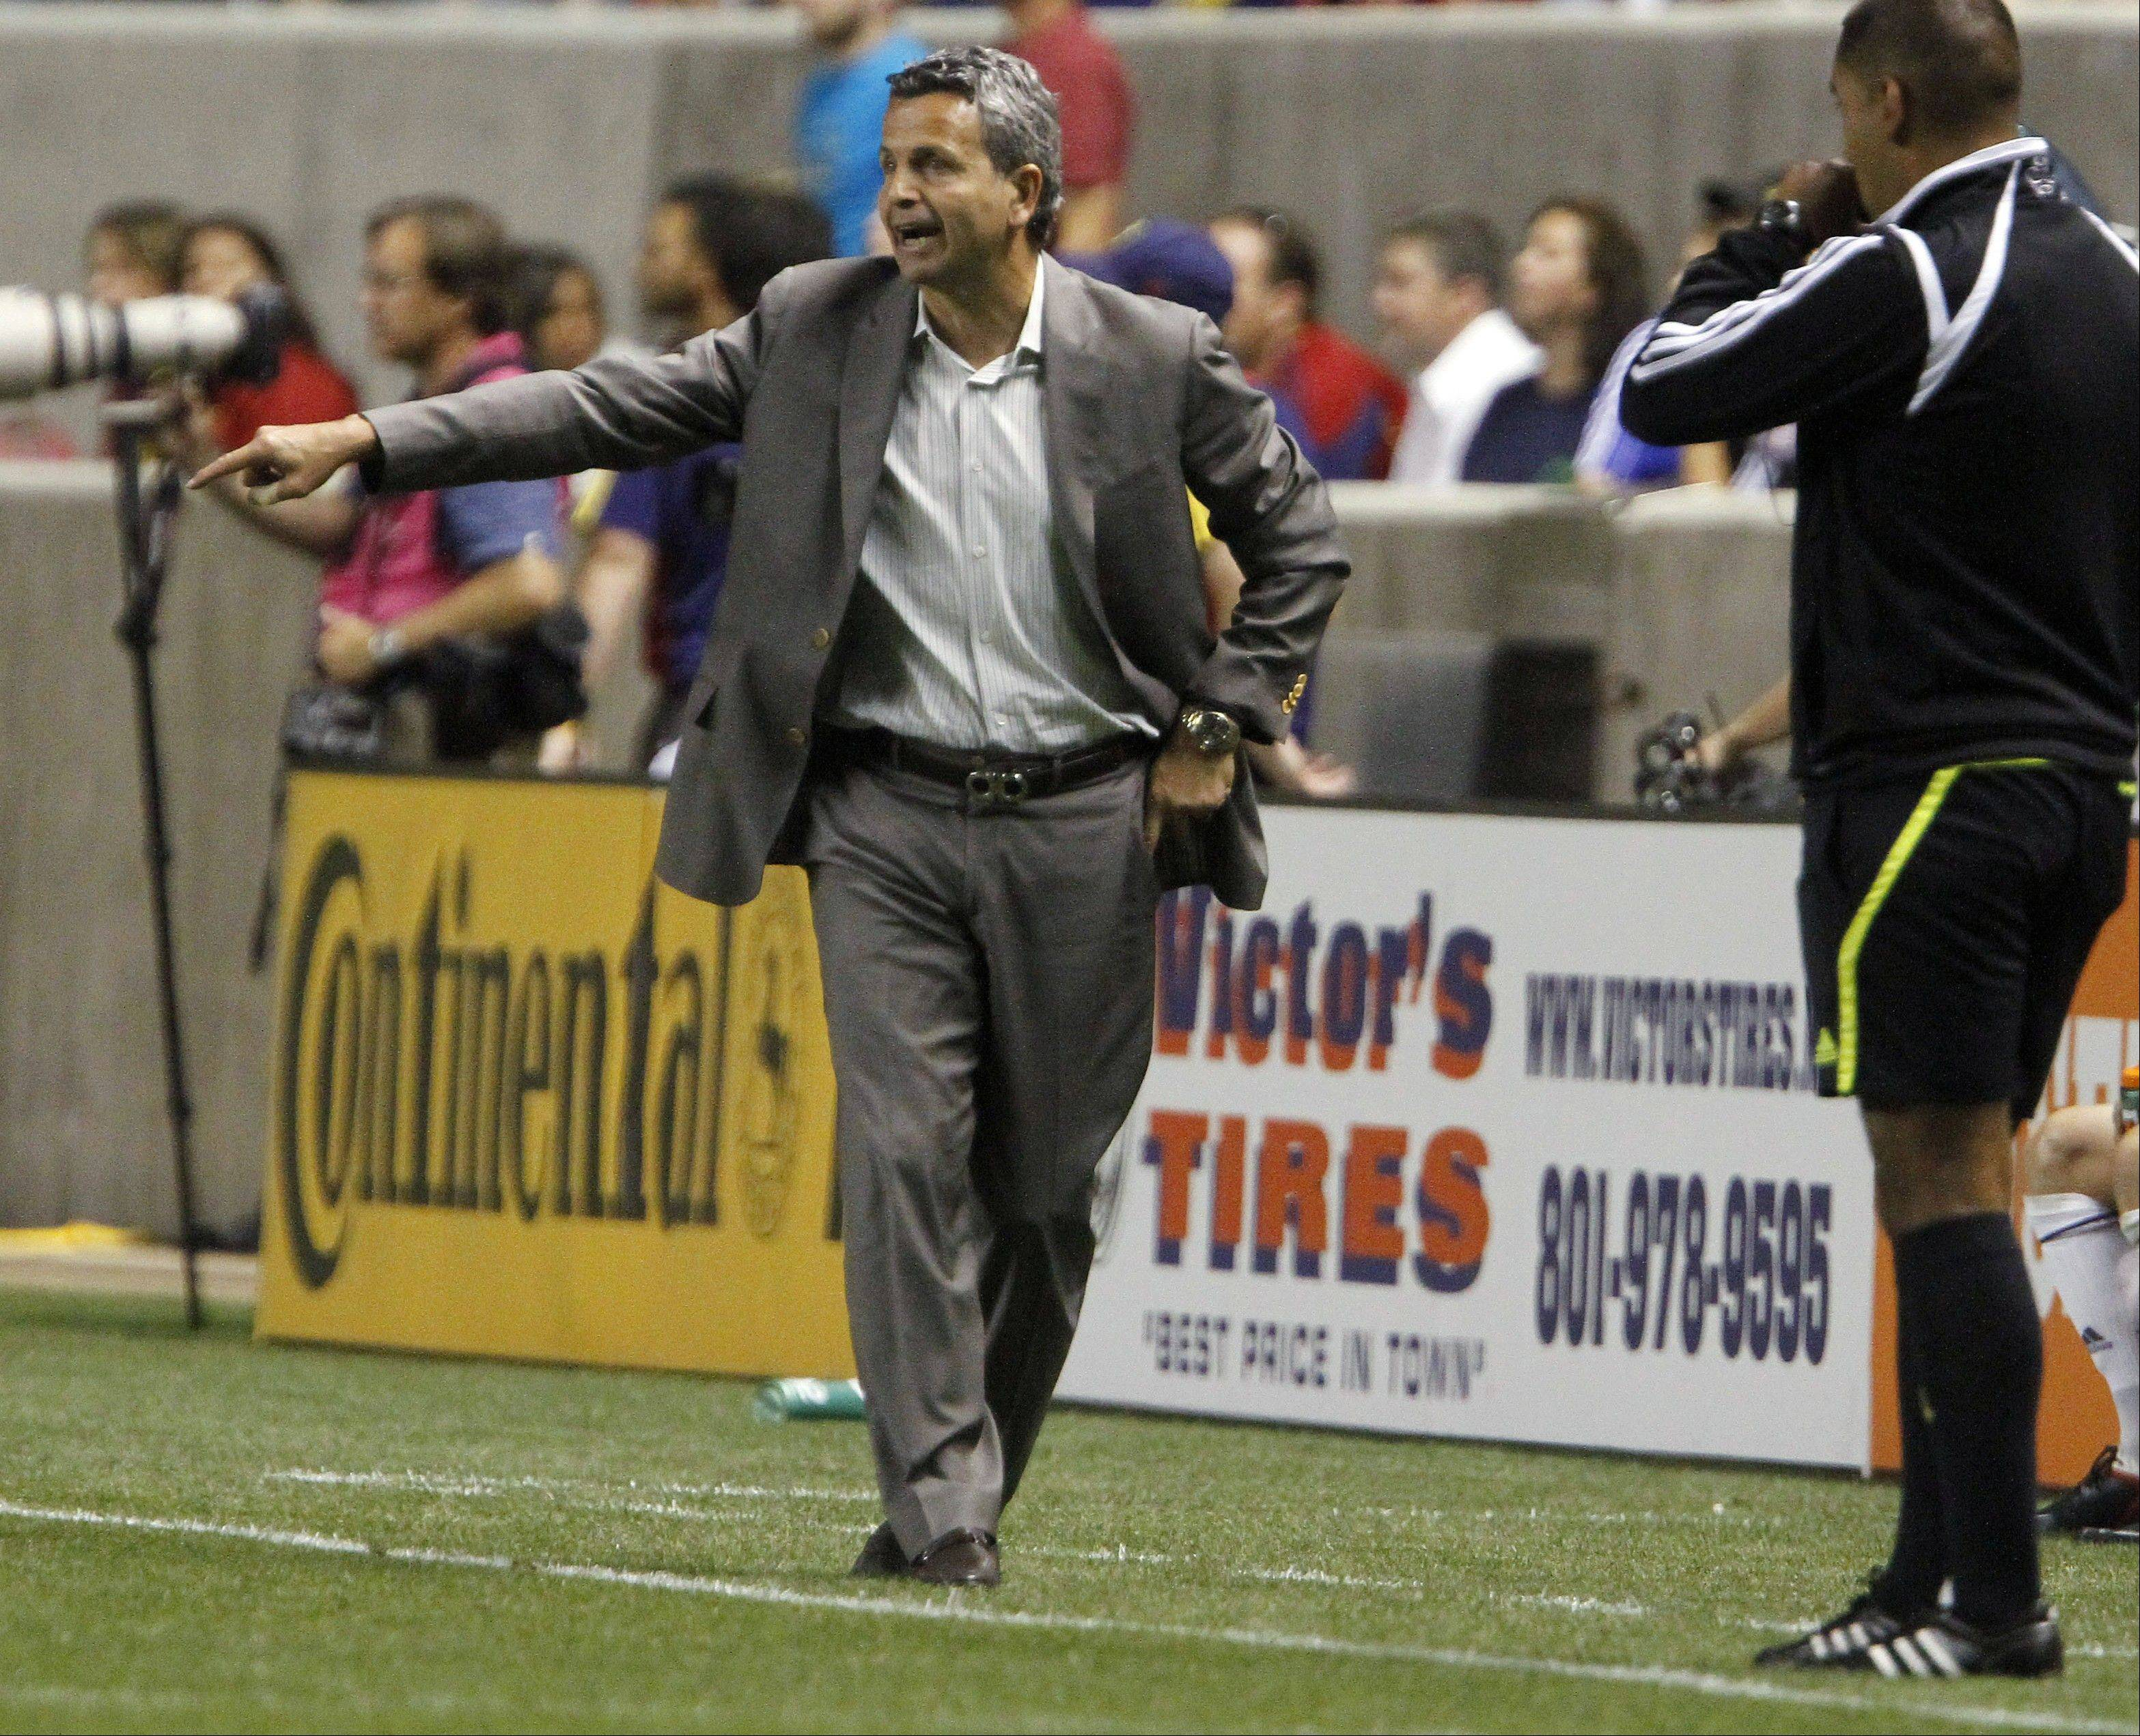 Chicago Fire coach Frank Klopas directs his team against the Real Salt Lake during the second half of an MLS soccer match in Salt Lake City, Wednesday, Sept. 28, 2011. Chicago won 3-0.